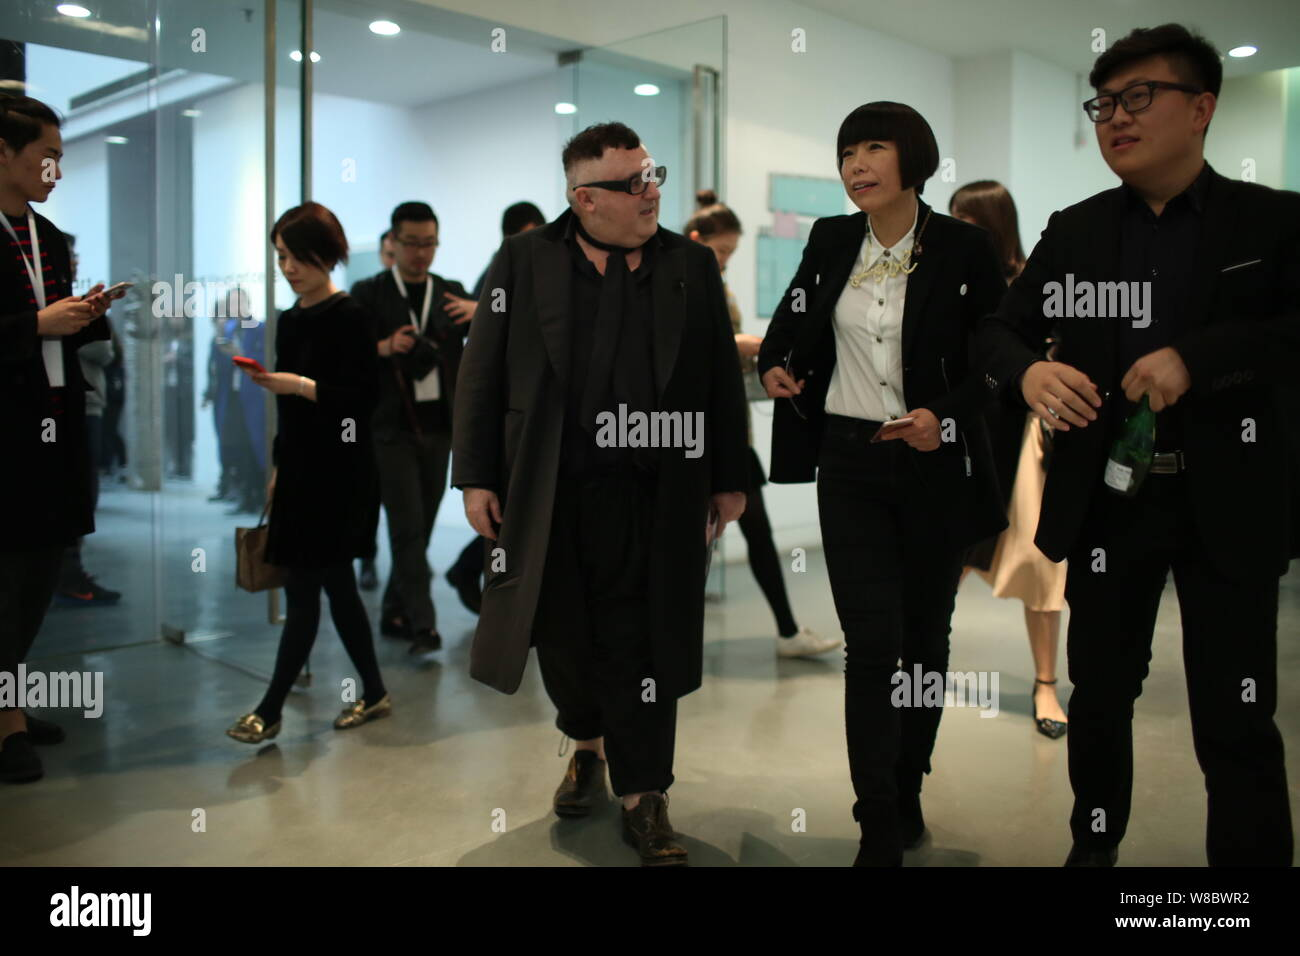 Alber Elbaz Center Former Fashion Designer Of Paris Fashion House Lanvin And Chinese Fashion Journalist Angelica Cheung Second Right Editor In Ch Stock Photo Alamy